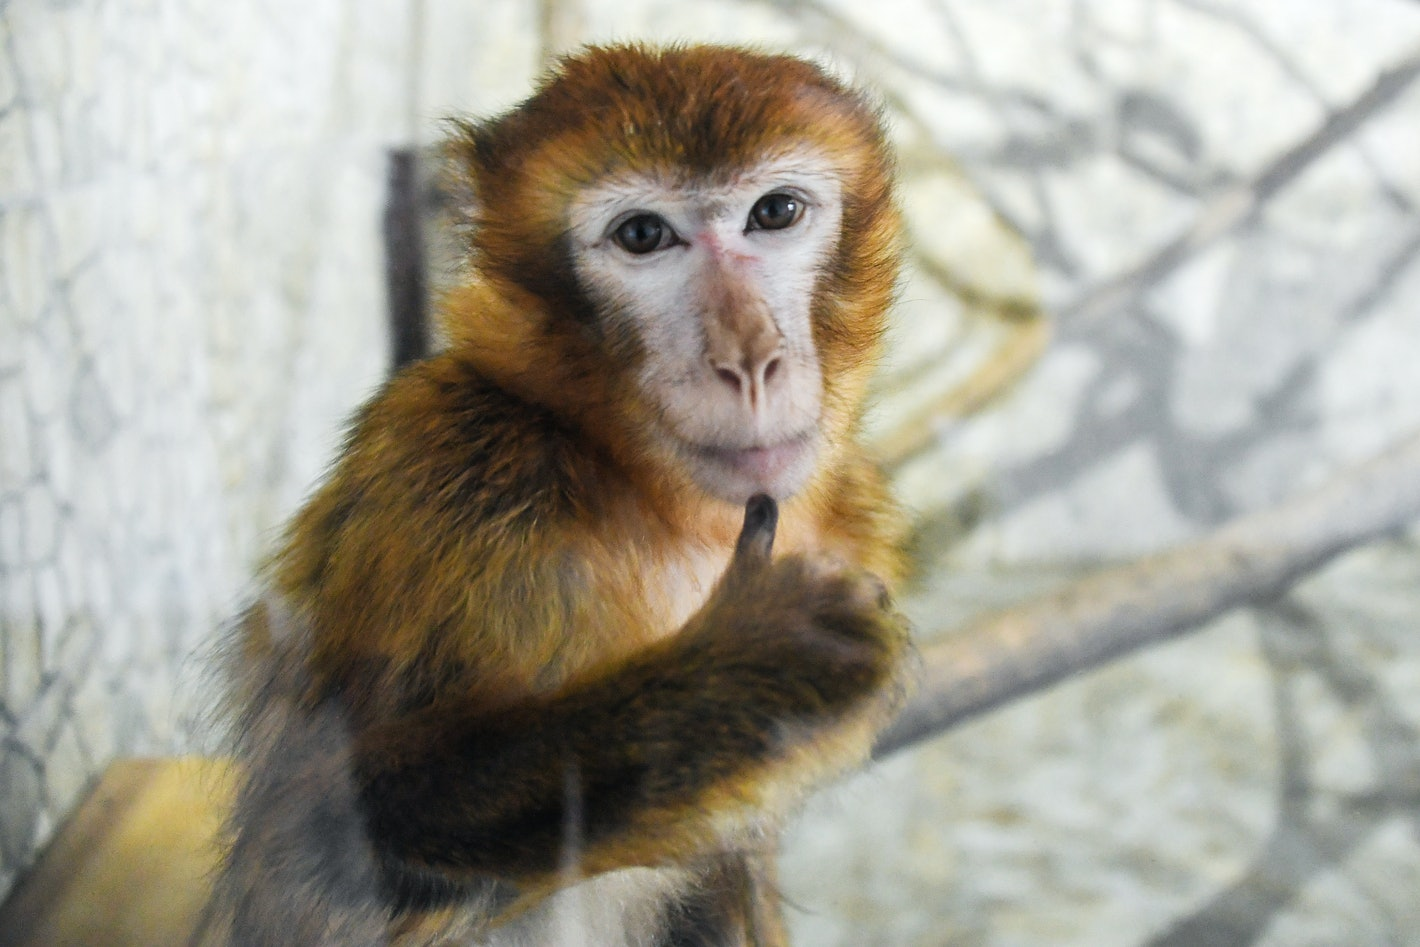 Humans last shared a common ancestor with macaques